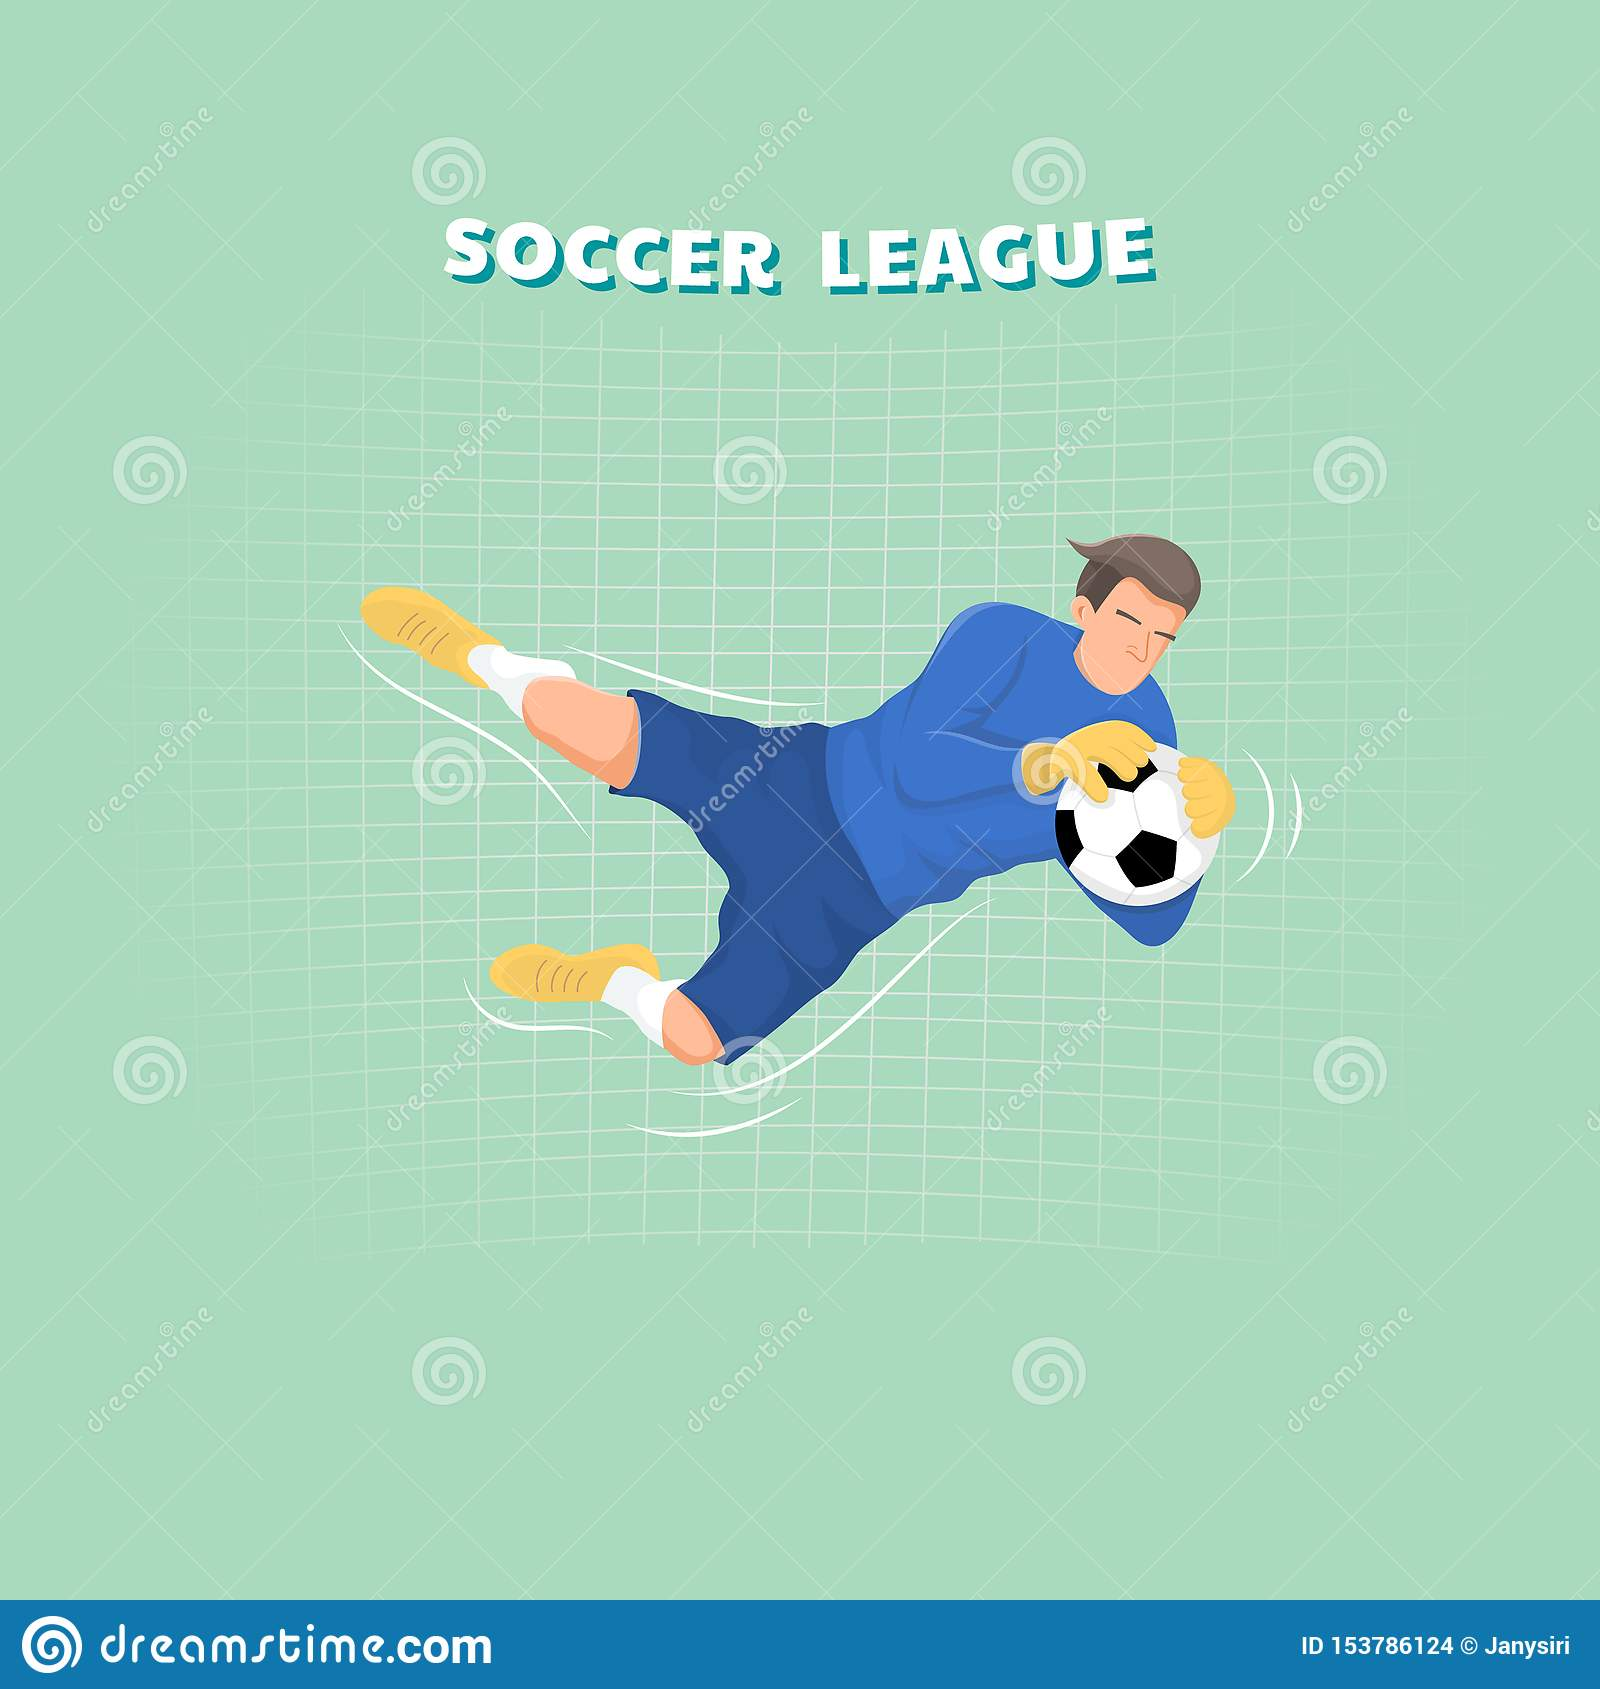 Goalkeeper catching the ball, soccer player. Flat sport character design.